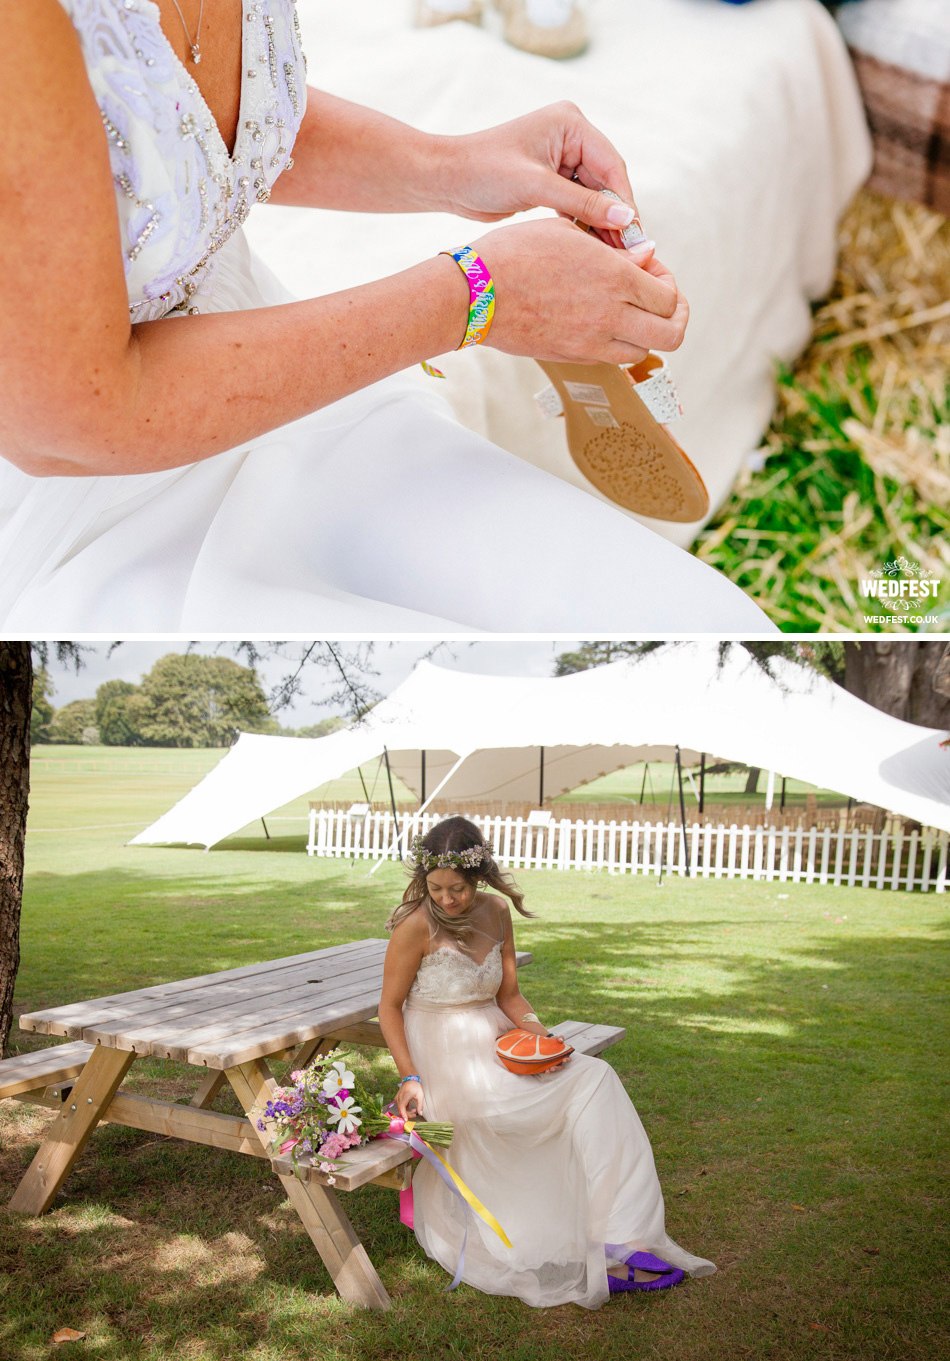 festival brides wedding wristbands